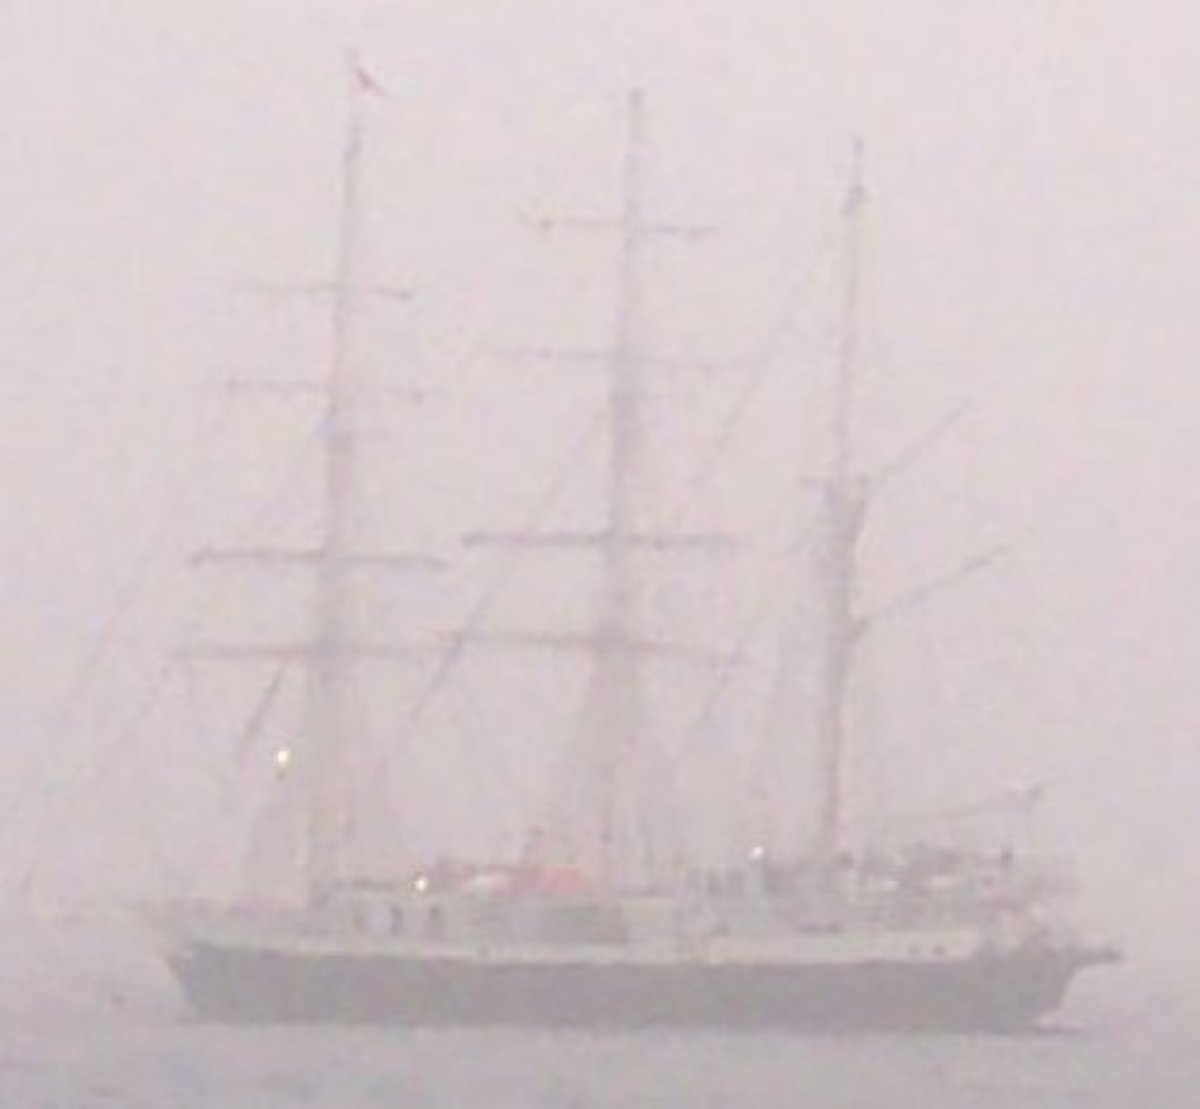 Ship at sea in a calima - looks like a ghost ship